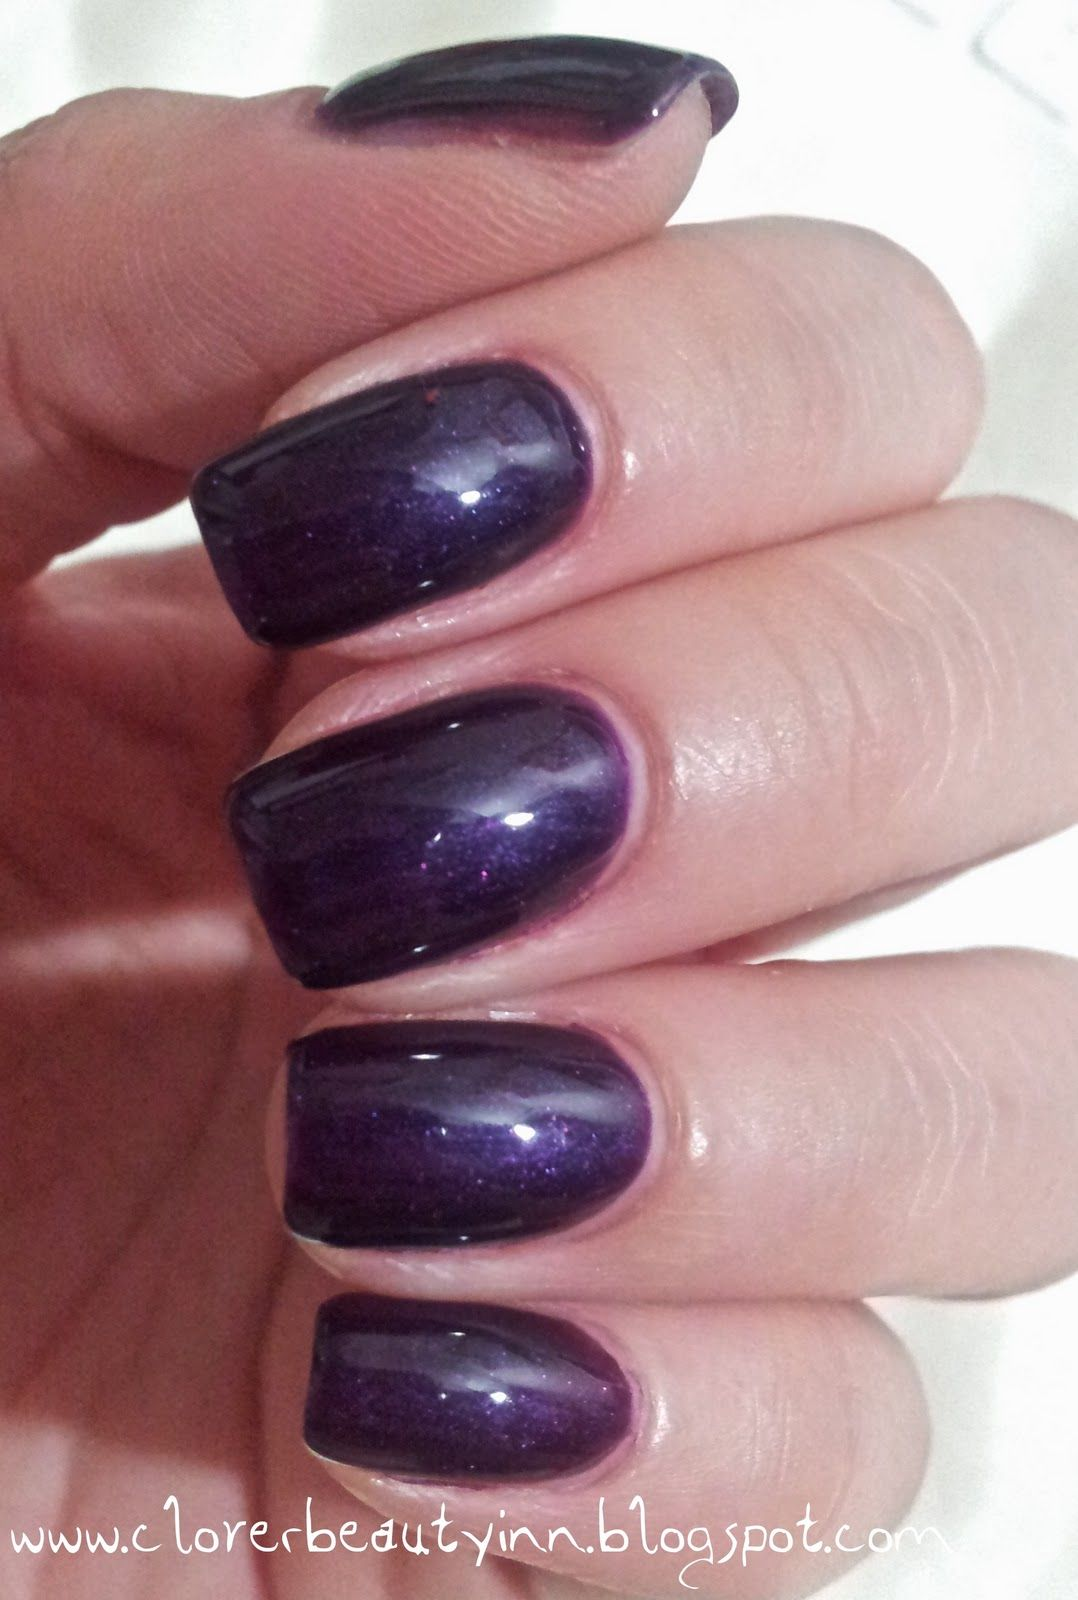 gelish nails | like my new Gelish color! And my new nail shape ...